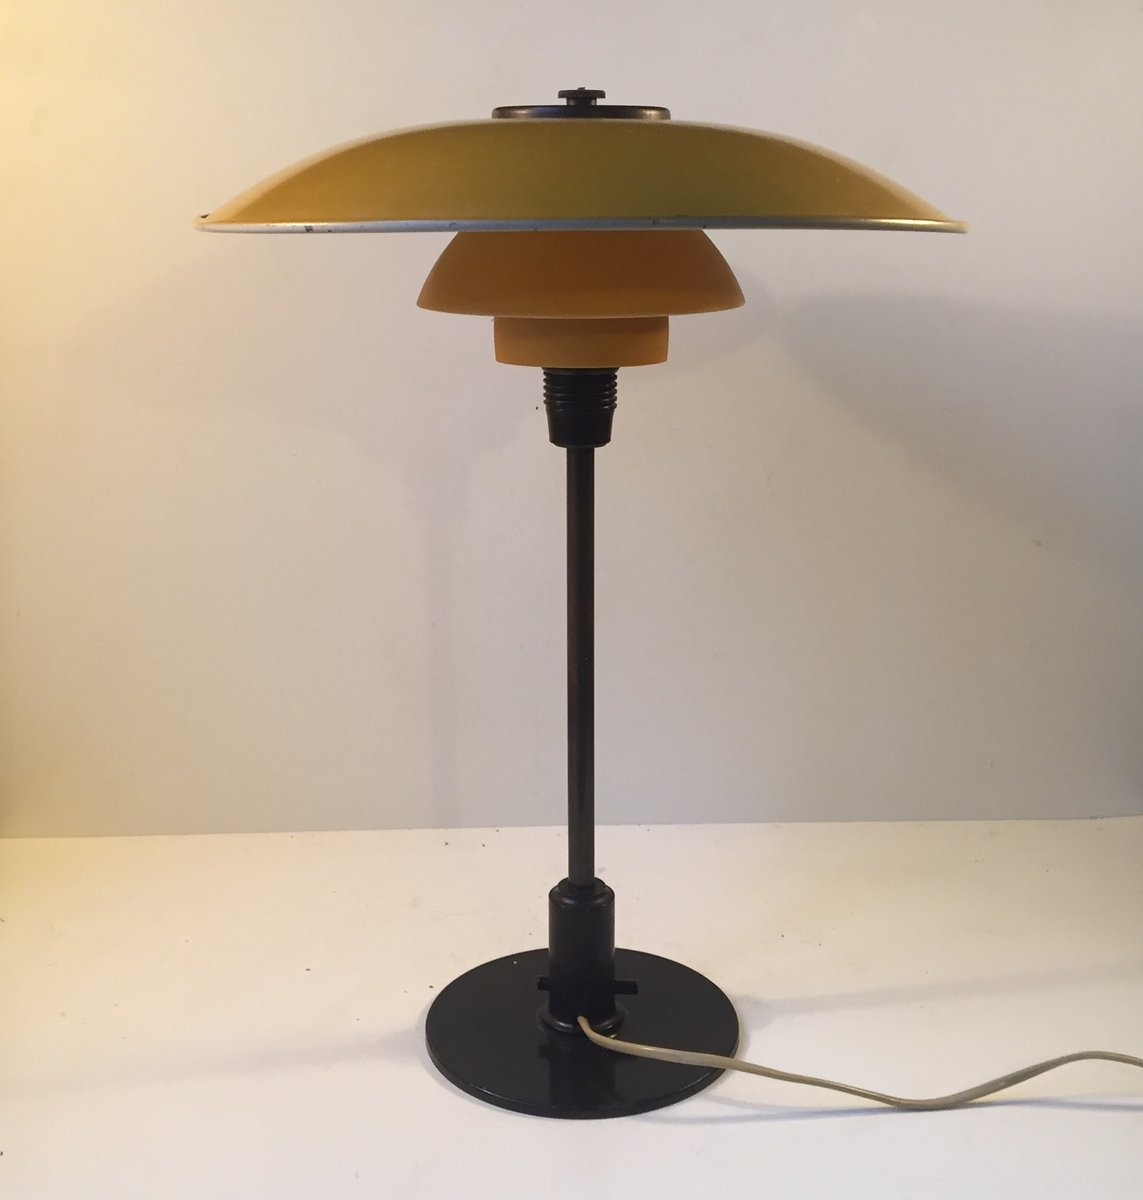 Ph 352 table lamp by poul henningsen for louis poulsen 1930s ph 352 table lamp by poul henningsen for louis poulsen 1930s mozeypictures Choice Image